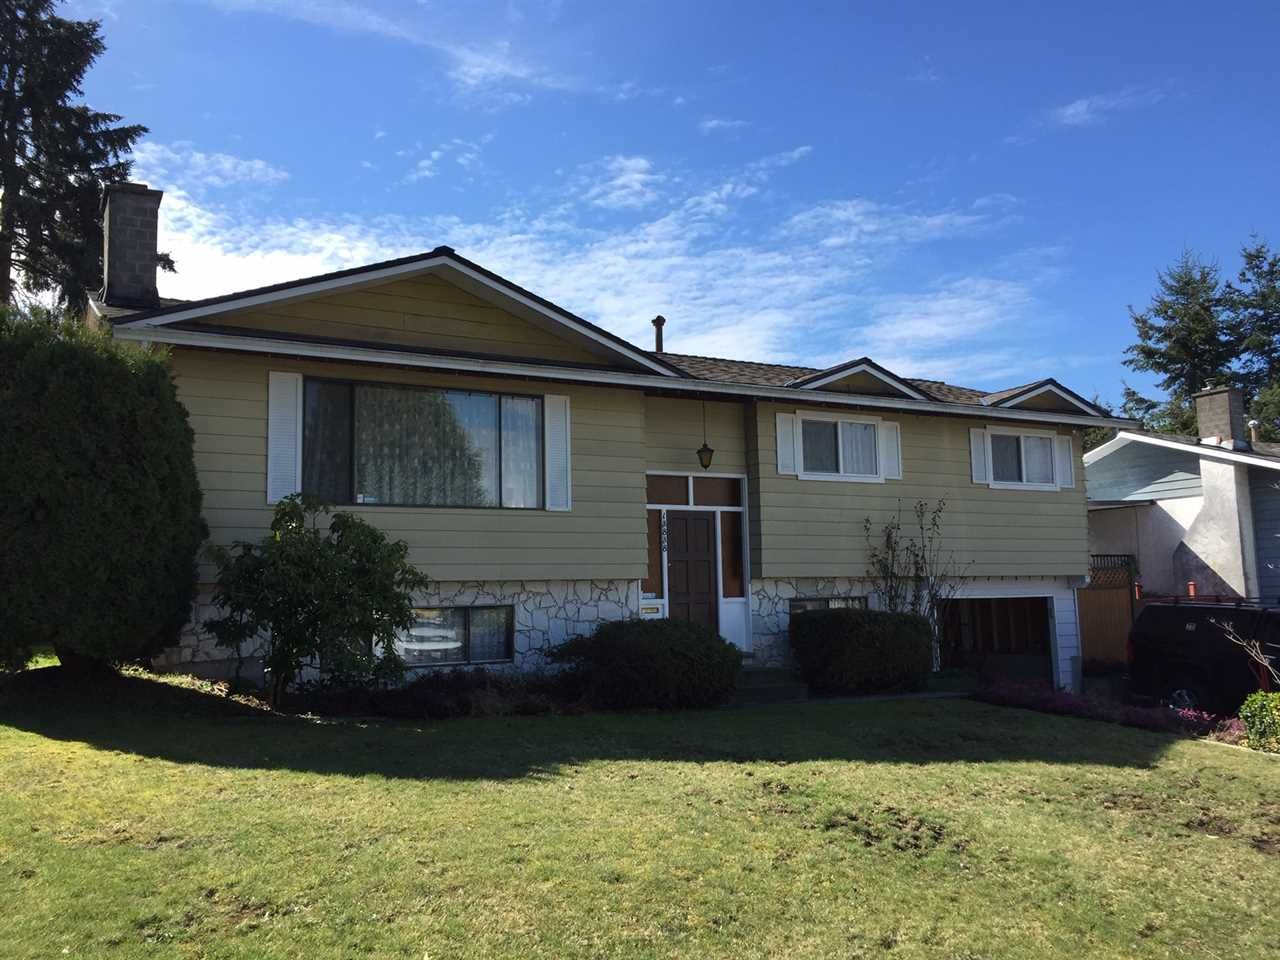 Main Photo: 13838 112A Avenue in Surrey: Bolivar Heights House for sale (North Surrey)  : MLS®# R2353201